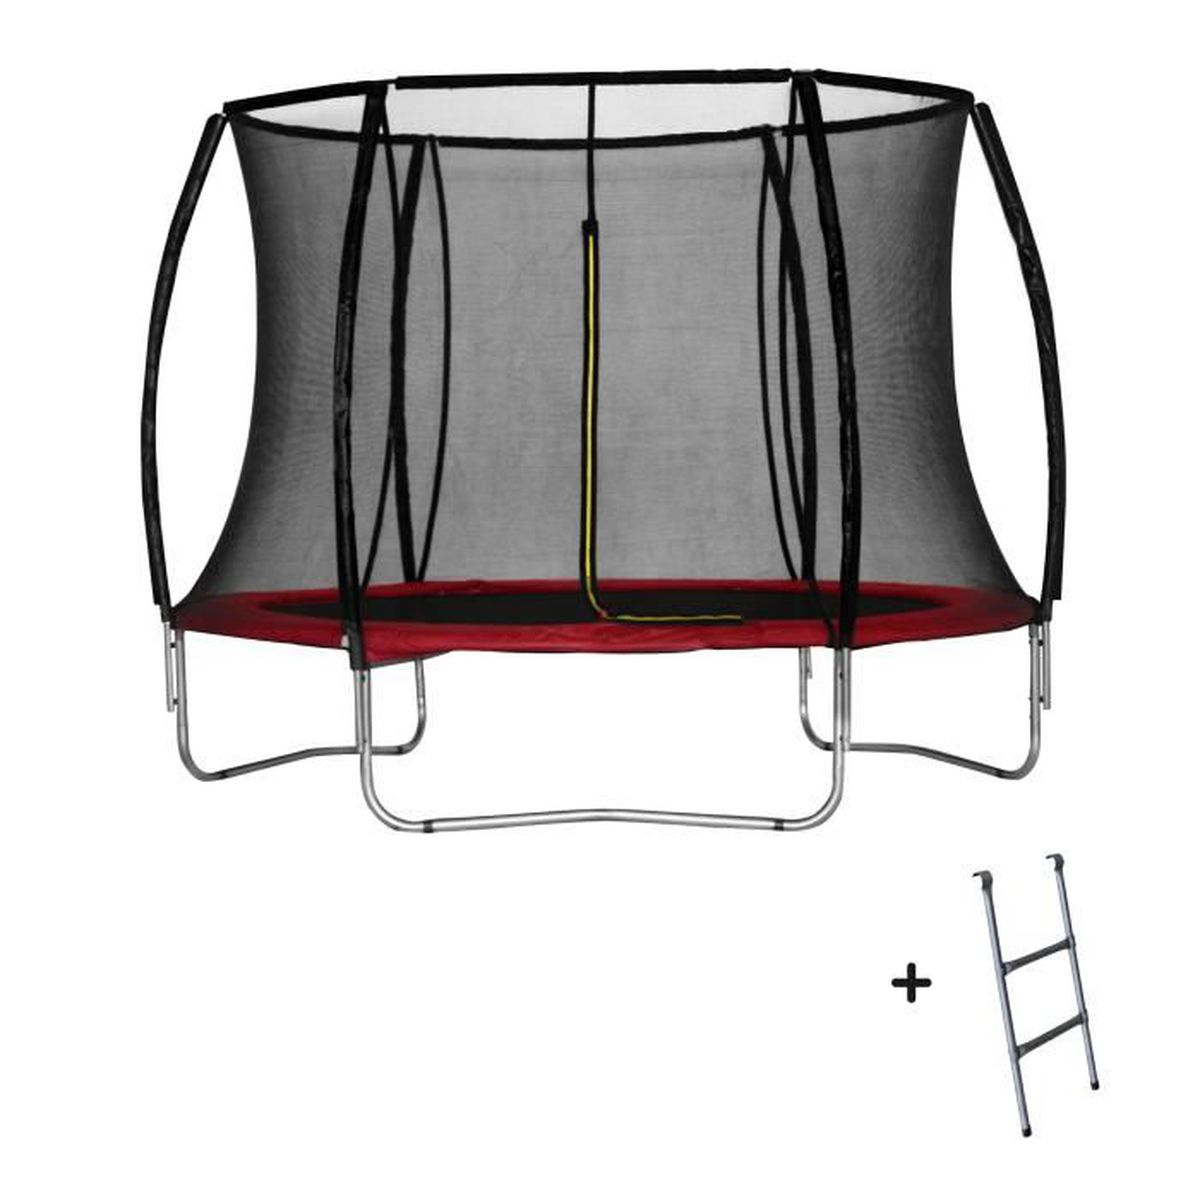 trampoline lanterne rouge 305 cm achat vente. Black Bedroom Furniture Sets. Home Design Ideas